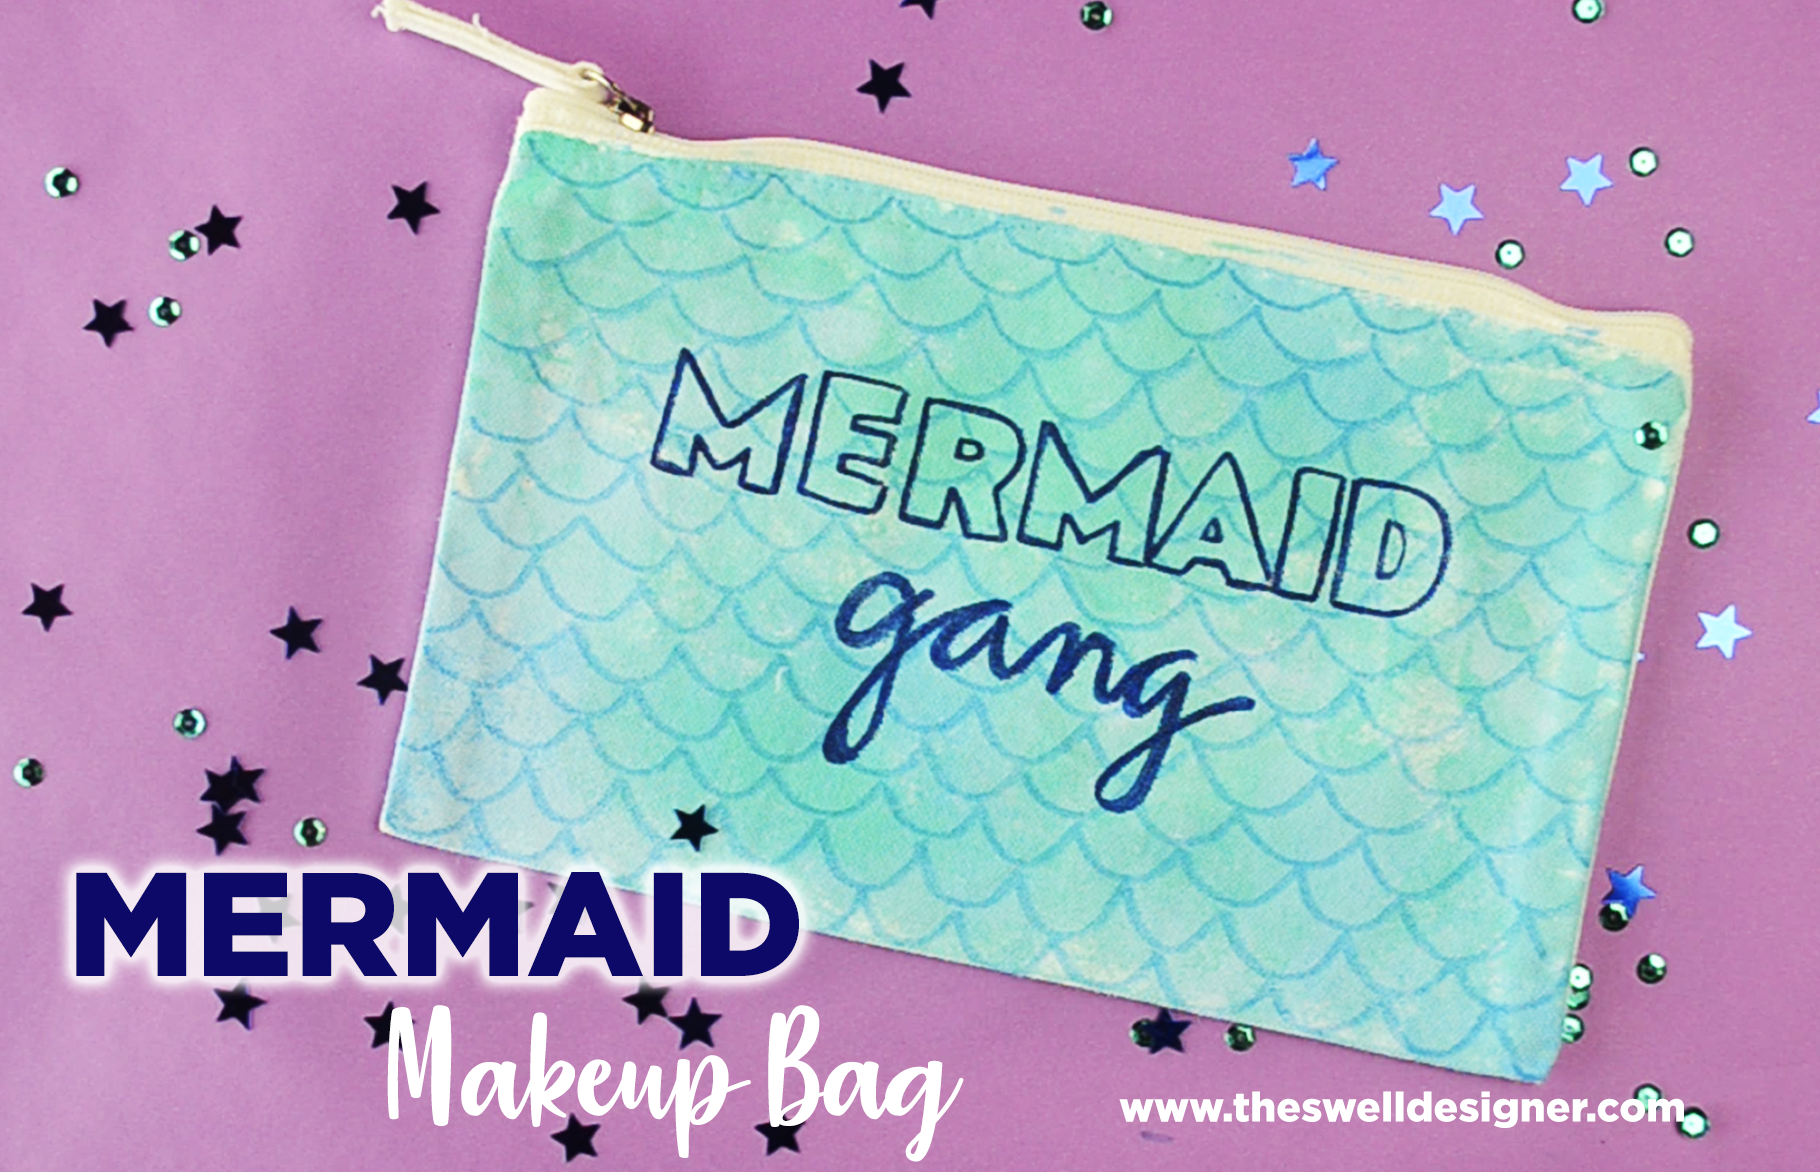 mermaid-makeup-bag